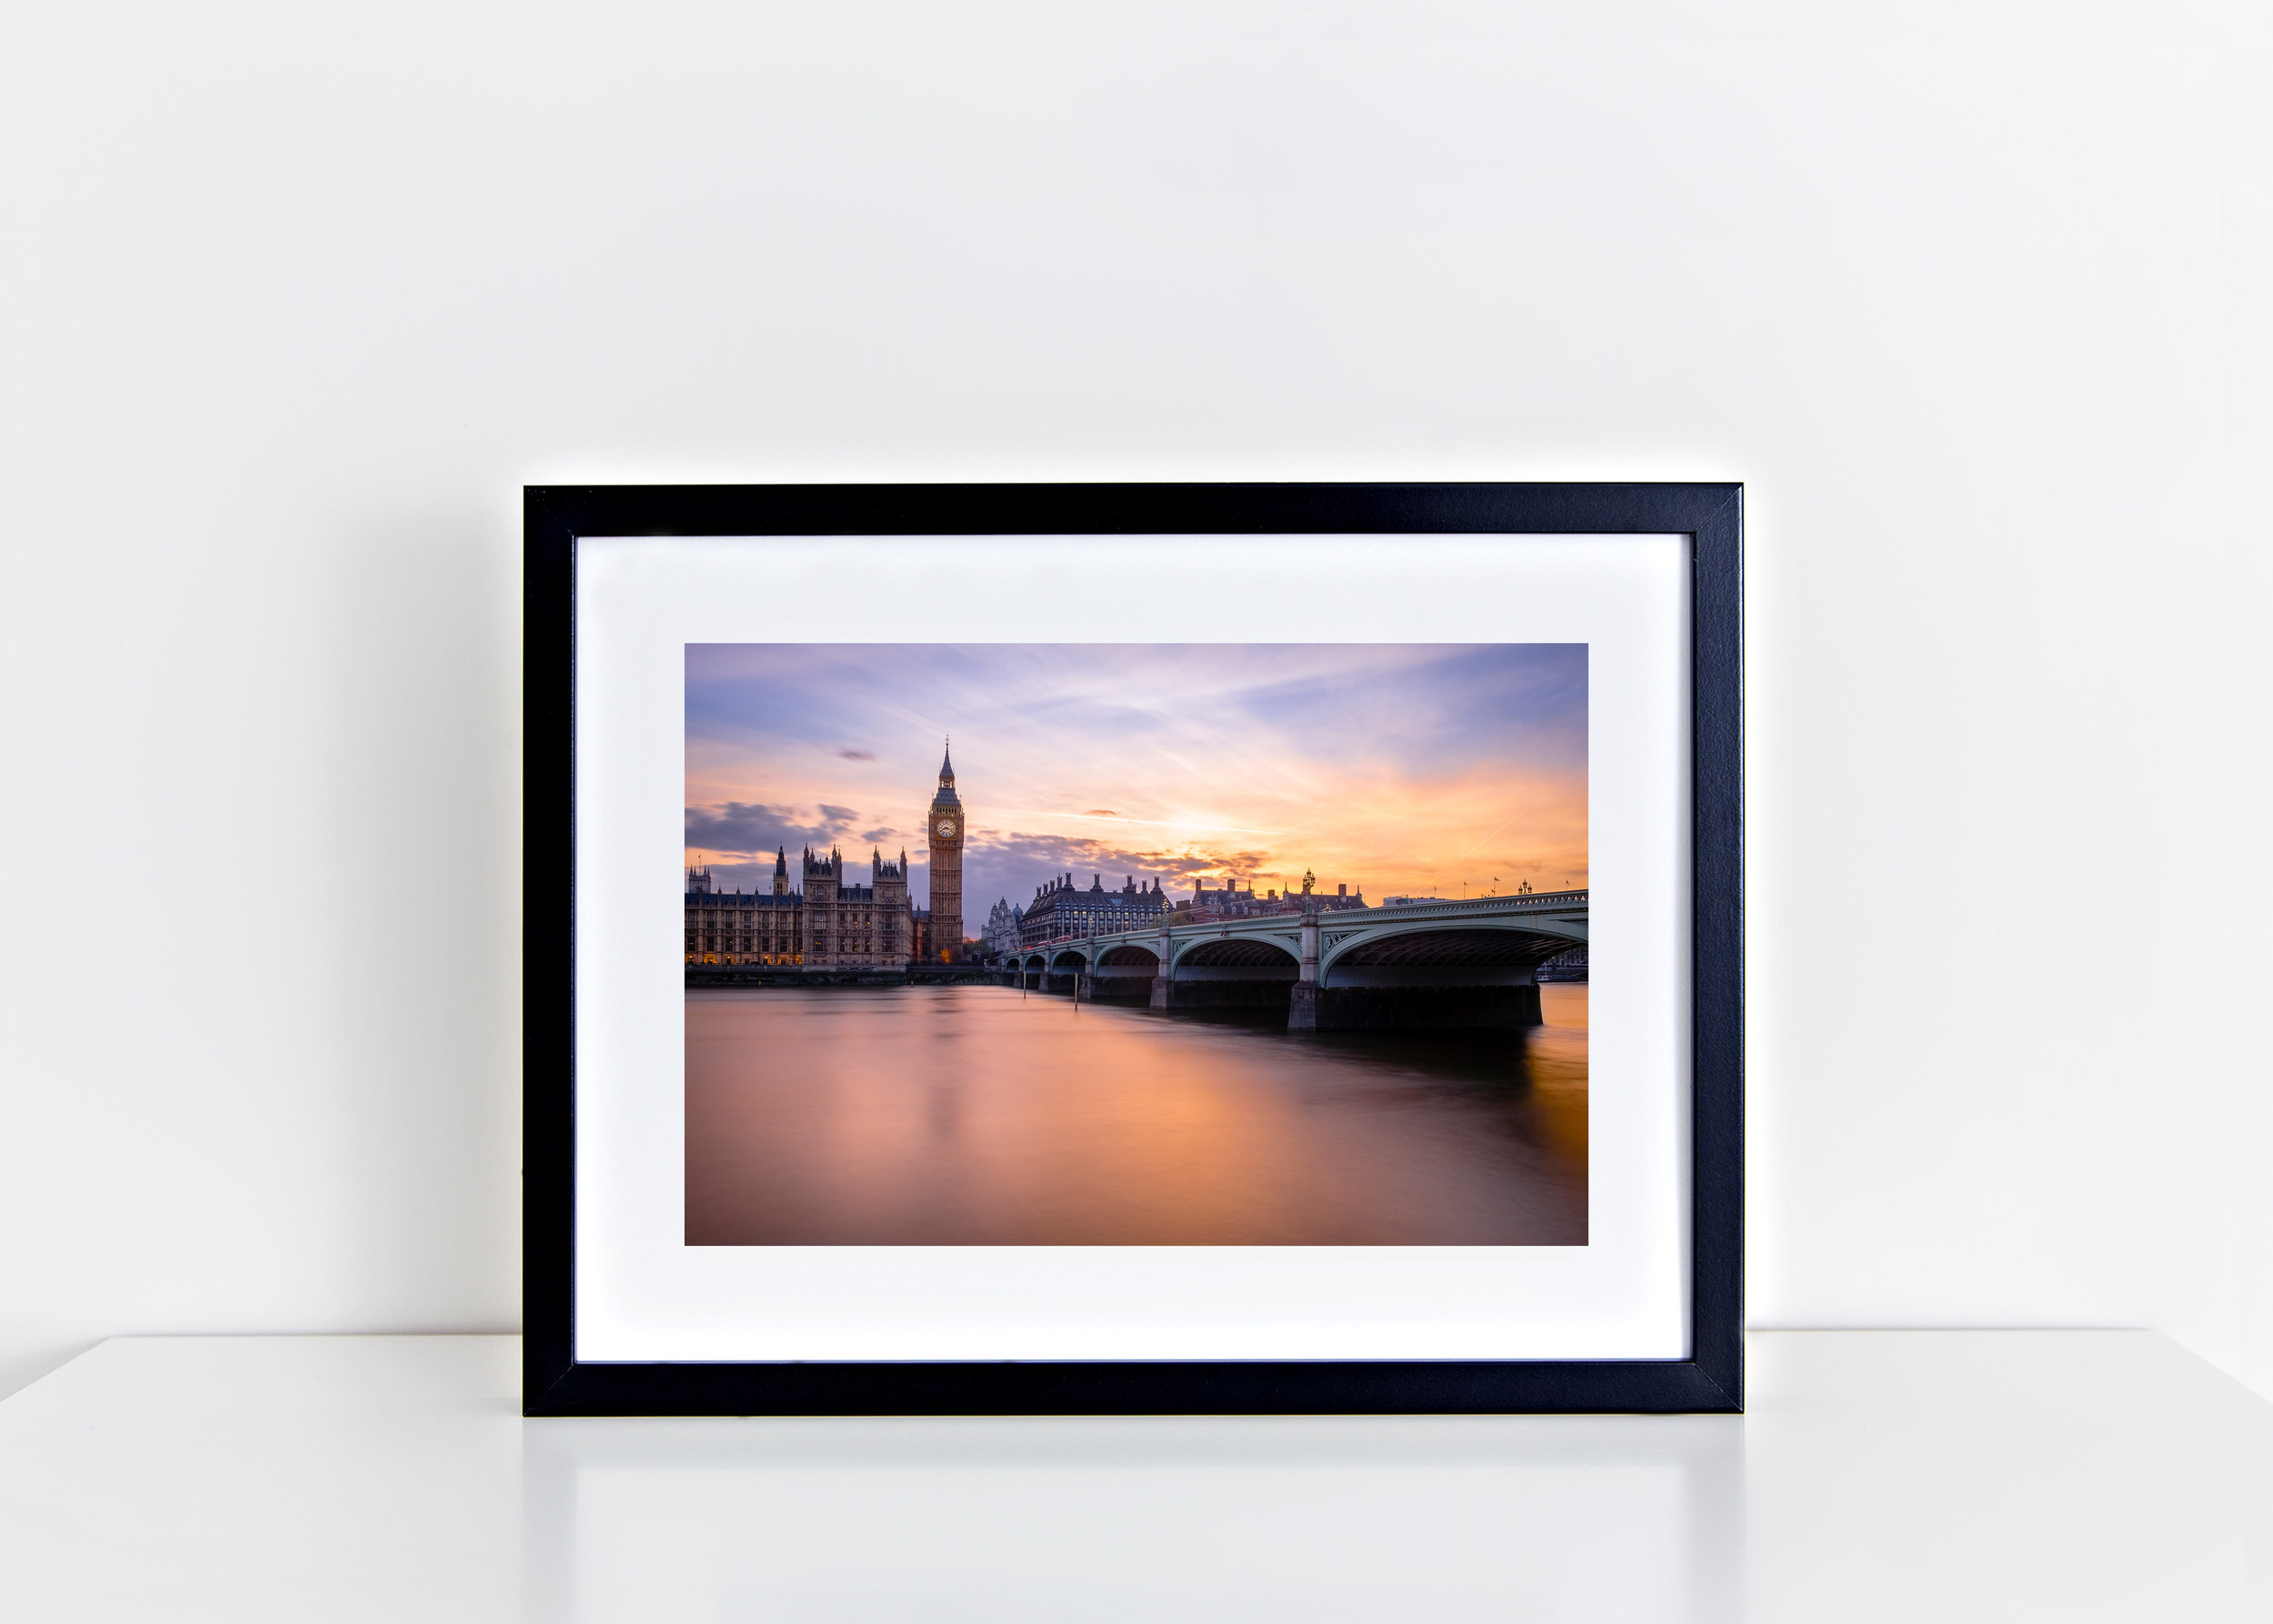 London - London's cityscapes featuring long exposures, sunrise and sunset images.